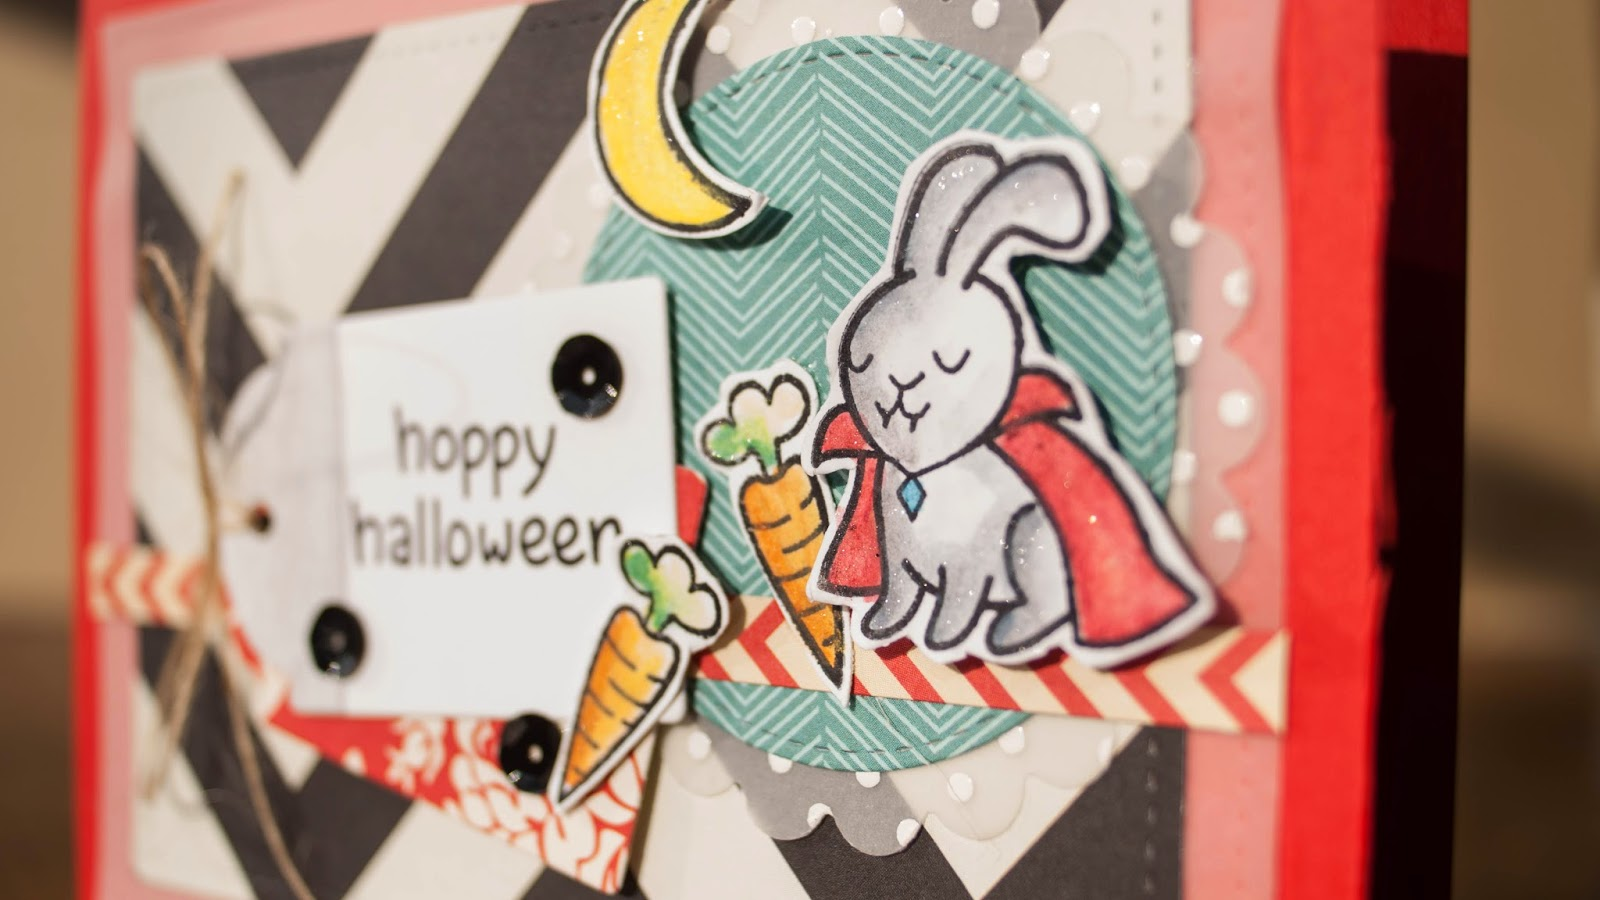 halloween #5 2014 - hoppy haloween - using watercolor pencils and velum with pattern paper